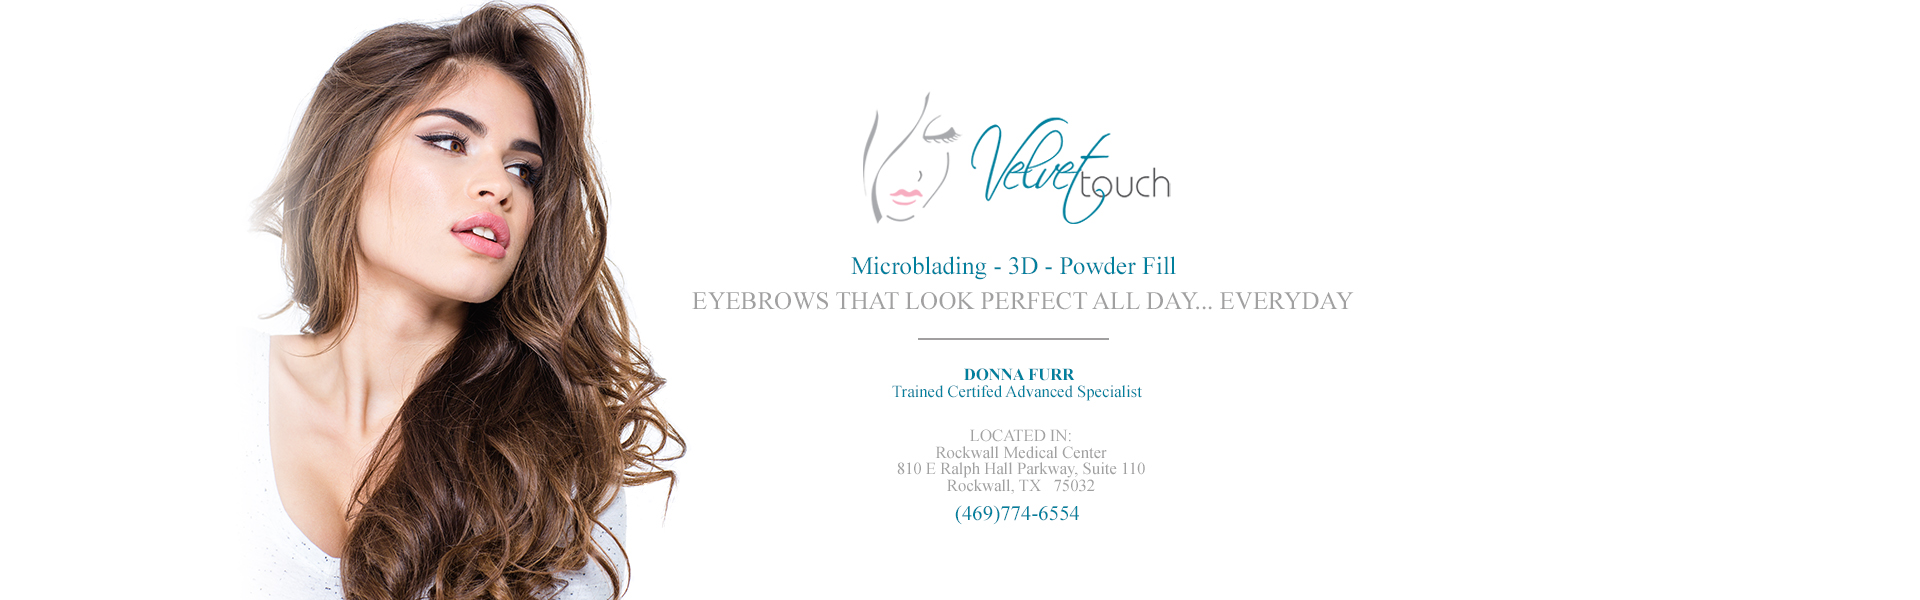 Home microblading in rockwall tx velvet touch permanent home microblading in rockwall tx velvet touch permanent cosmetics llc reheart Image collections